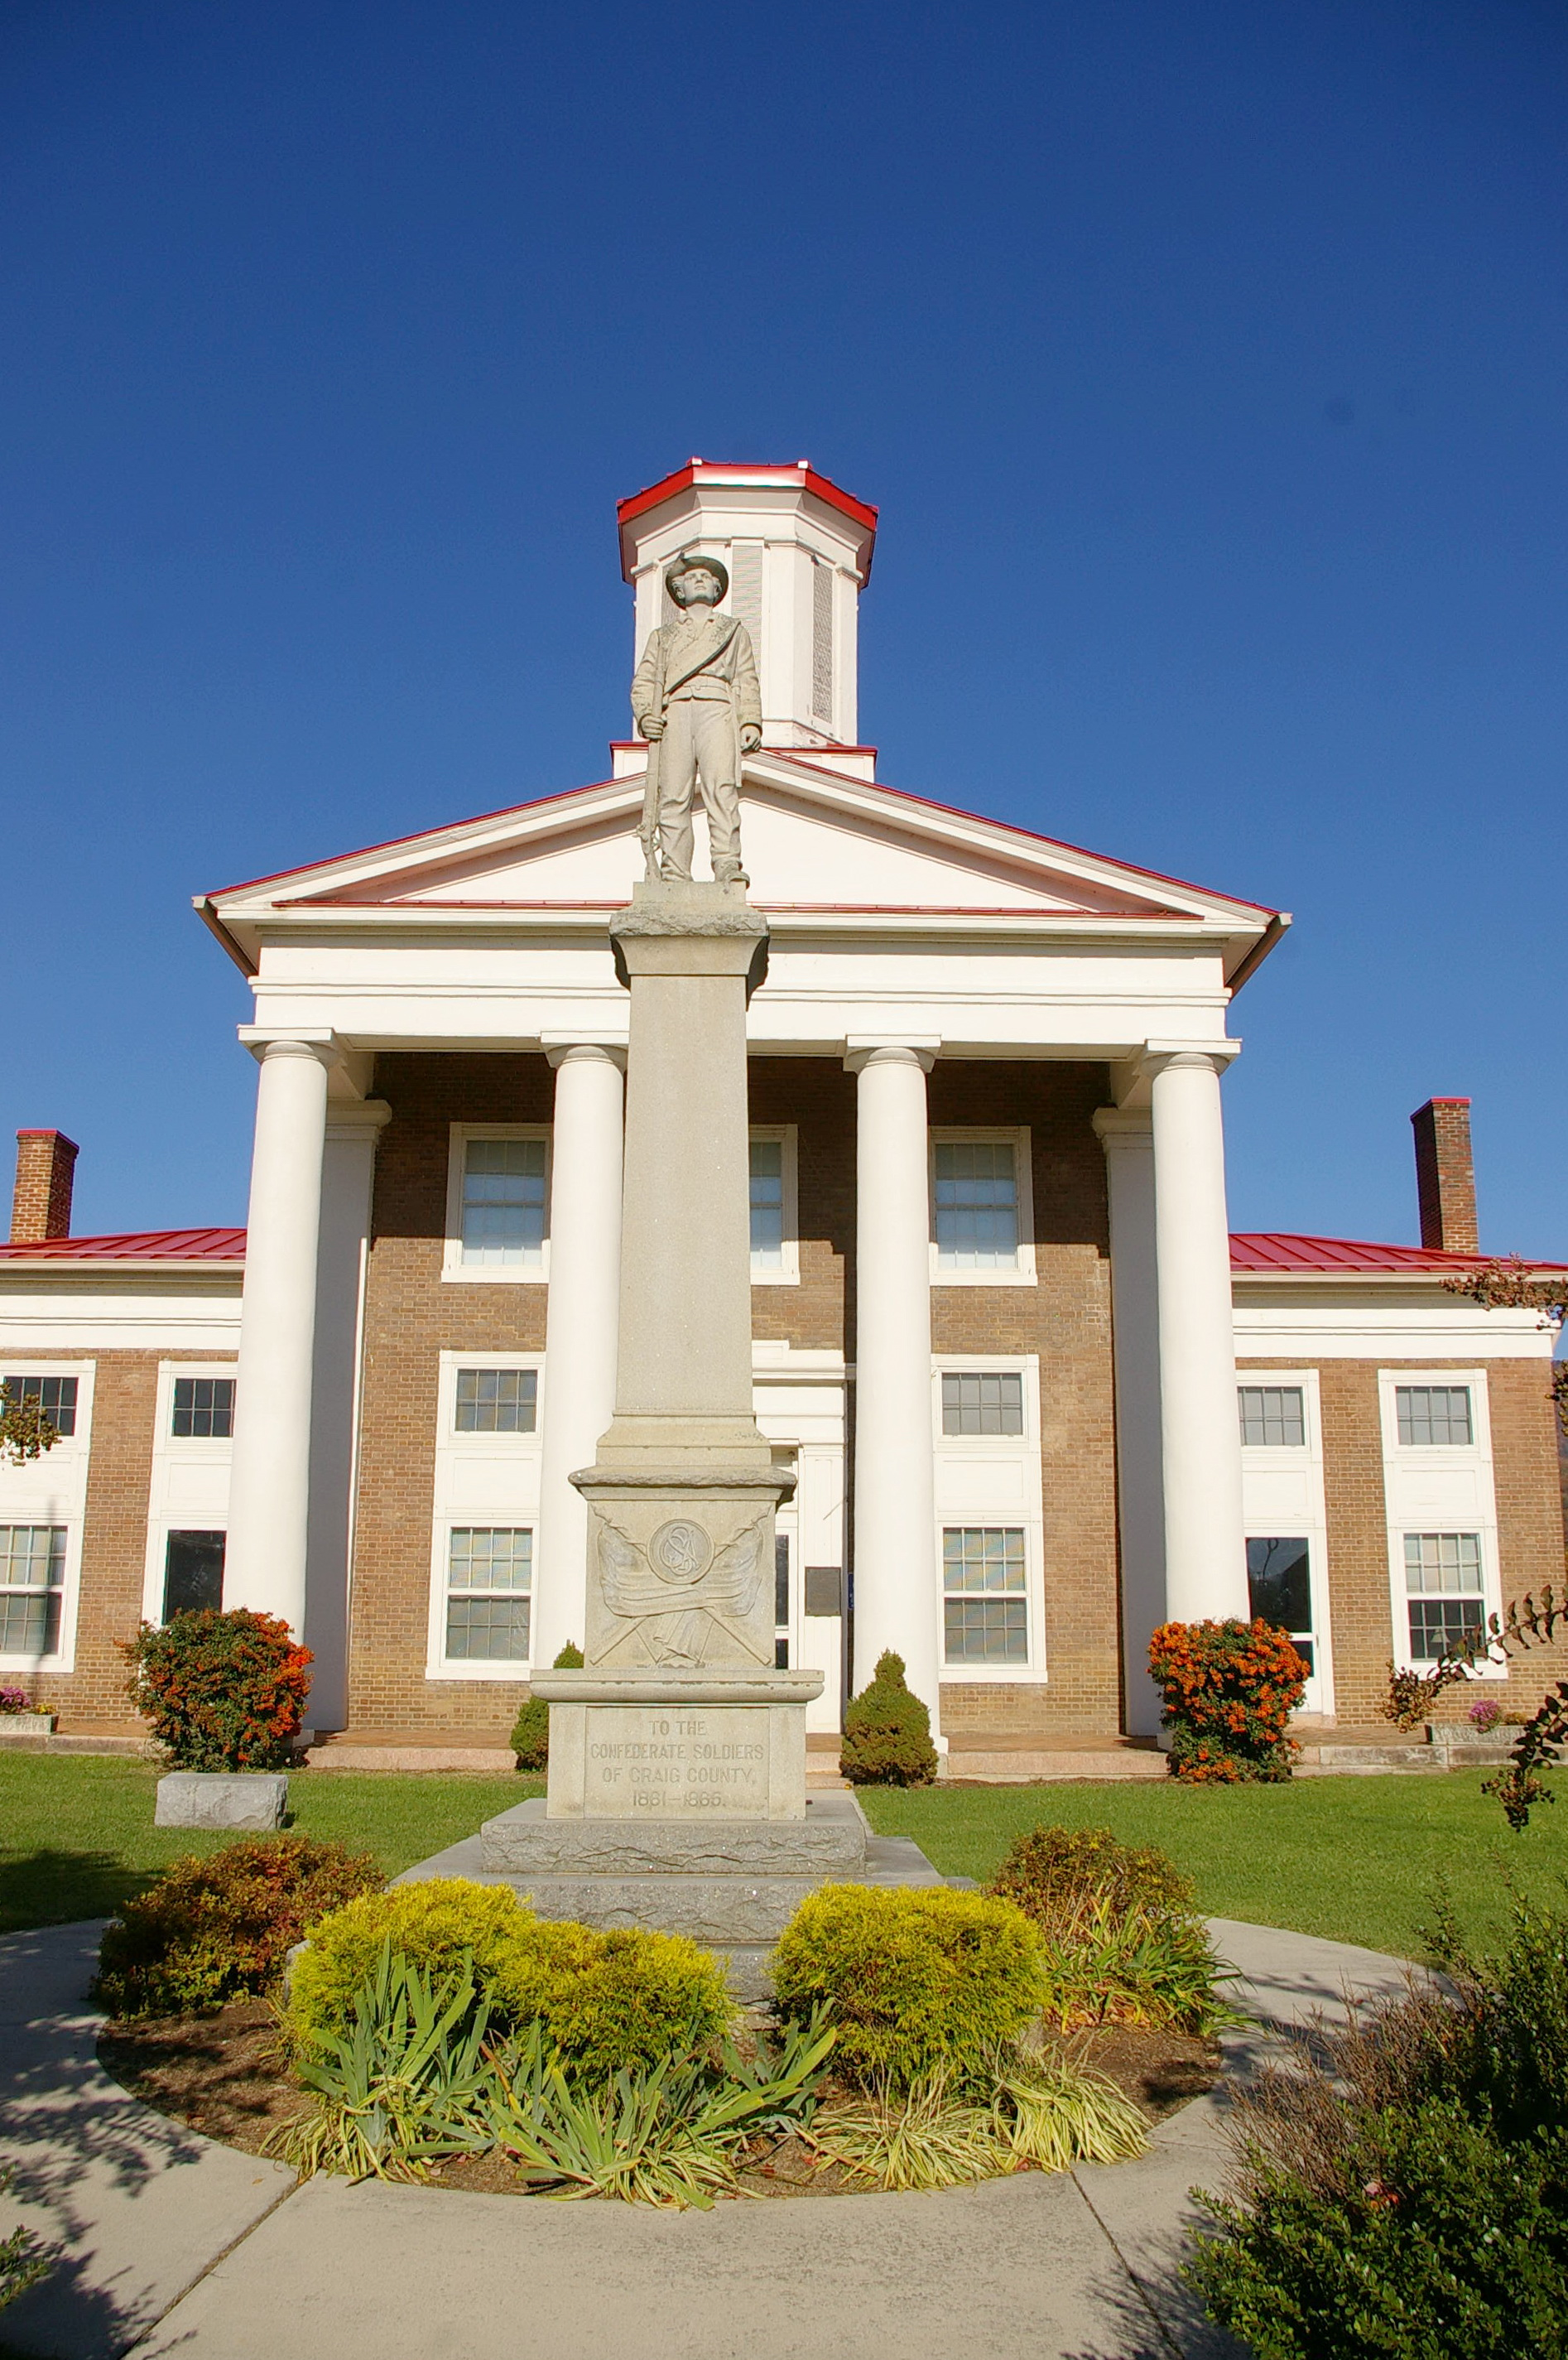 Craig County Us Courthouses